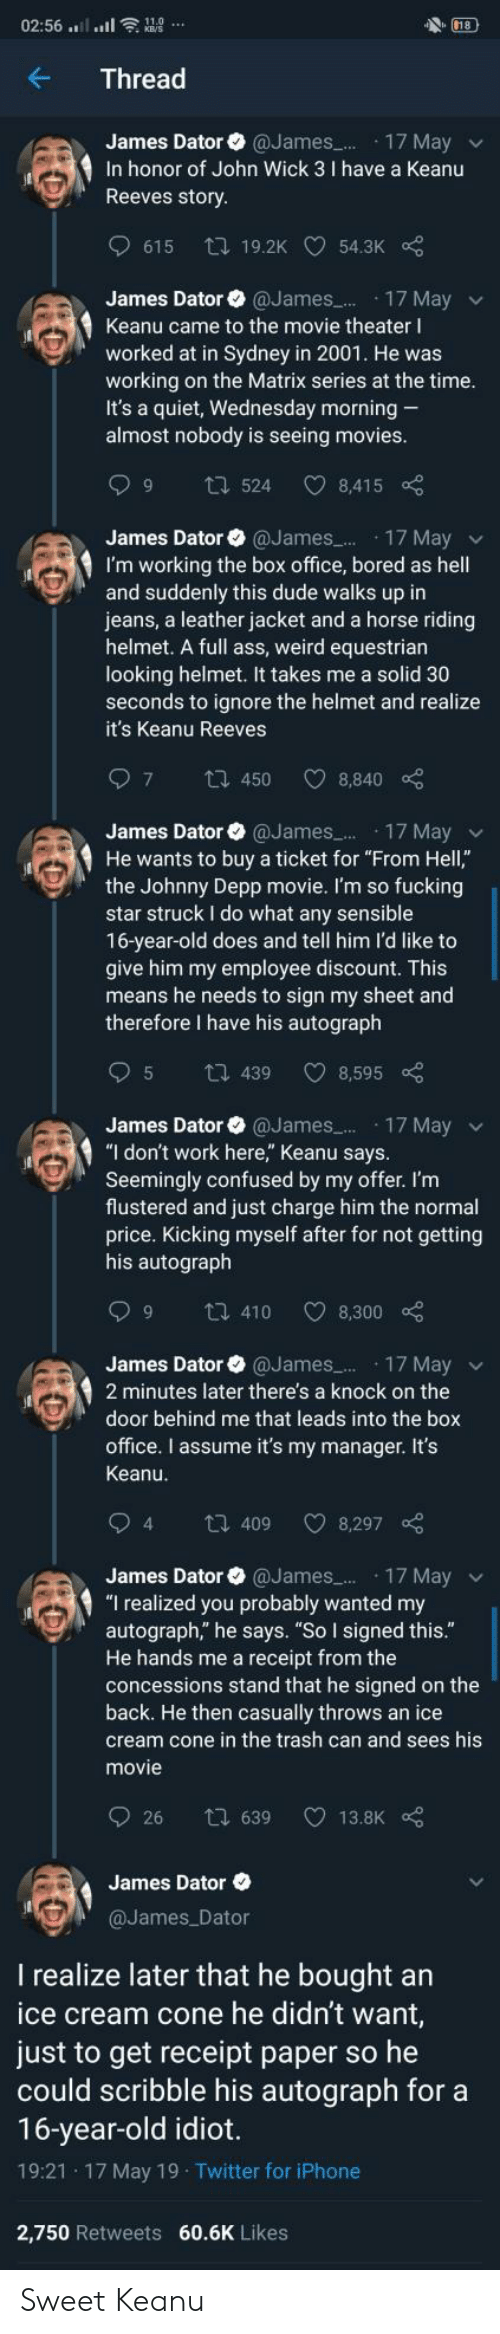 "Ass, Bored, and Confused: 18  02:56 ....ll  Thread  James Dator @James.. 17 May  In honor of John Wick 3 I have a Keanu  Reeves story  615  ti 19.2K 54.3K  James Dator @James..  17 May  Keanu came to the movie theater I  worked at in Sydney in 2001. He was  working on the Matrix series at the time.  It's a quiet, Wednesday morning  almost nobody is seeing movies.  6 C  t524  8,415  James Dator @James..  17 May  I'm working the box office, bored as hell  and suddenly this dude walks up in  jeans, a leather jacket and a horse riding  helmet. A full ass, weird equestrian  looking helmet. It takes me a solid 30  seconds to ignore the helmet and realize  it's Keanu Reeves  7  1450  8,840  James Dator @James 17 Mayv  He wants to buy a ticket for ""From Hell,""  the Johnny Depp movie. I'm so fucking  star struck I do what any sensible  16-year-old does and tell him l'd like to  give him my employee discount. This  means he needs to sign my sheet and  therefore I have his autograph  5  8,595  t439  James Dator @James. 17 May  ""I don't work here,"" Keanu says.  Seemingly confused by my offer. I'm  flustered and just charge him the normal  price. Kicking myself after for not getting  his autograph  9  8,300  t 410  James Dator @James..  17 May  2 minutes later there's a knock on the  door behind me that leads into the box  office. I assume it's my manager. It's  Keanu.  94  t 409  8,297  17 May  ""I realized you probably wanted my  autograph,"" he says. ""So I signed this.""  He hands me a receipt from the  concessions stand that he signed on the  back. He then casually throws an ice  James Dator  @James...  cream cone in the trash can and sees his  movie  26  t 639  13.8K  James Dator  @James Dator  realize later that he bought an  ice cream cone he didn't want,  just to get receipt paper so he  could scribble his autograph for a  16-year-old idiot.  19:21 17 May 19 Twitter for iPhone  2,750 Retweets 60.6K Likes Sweet Keanu"